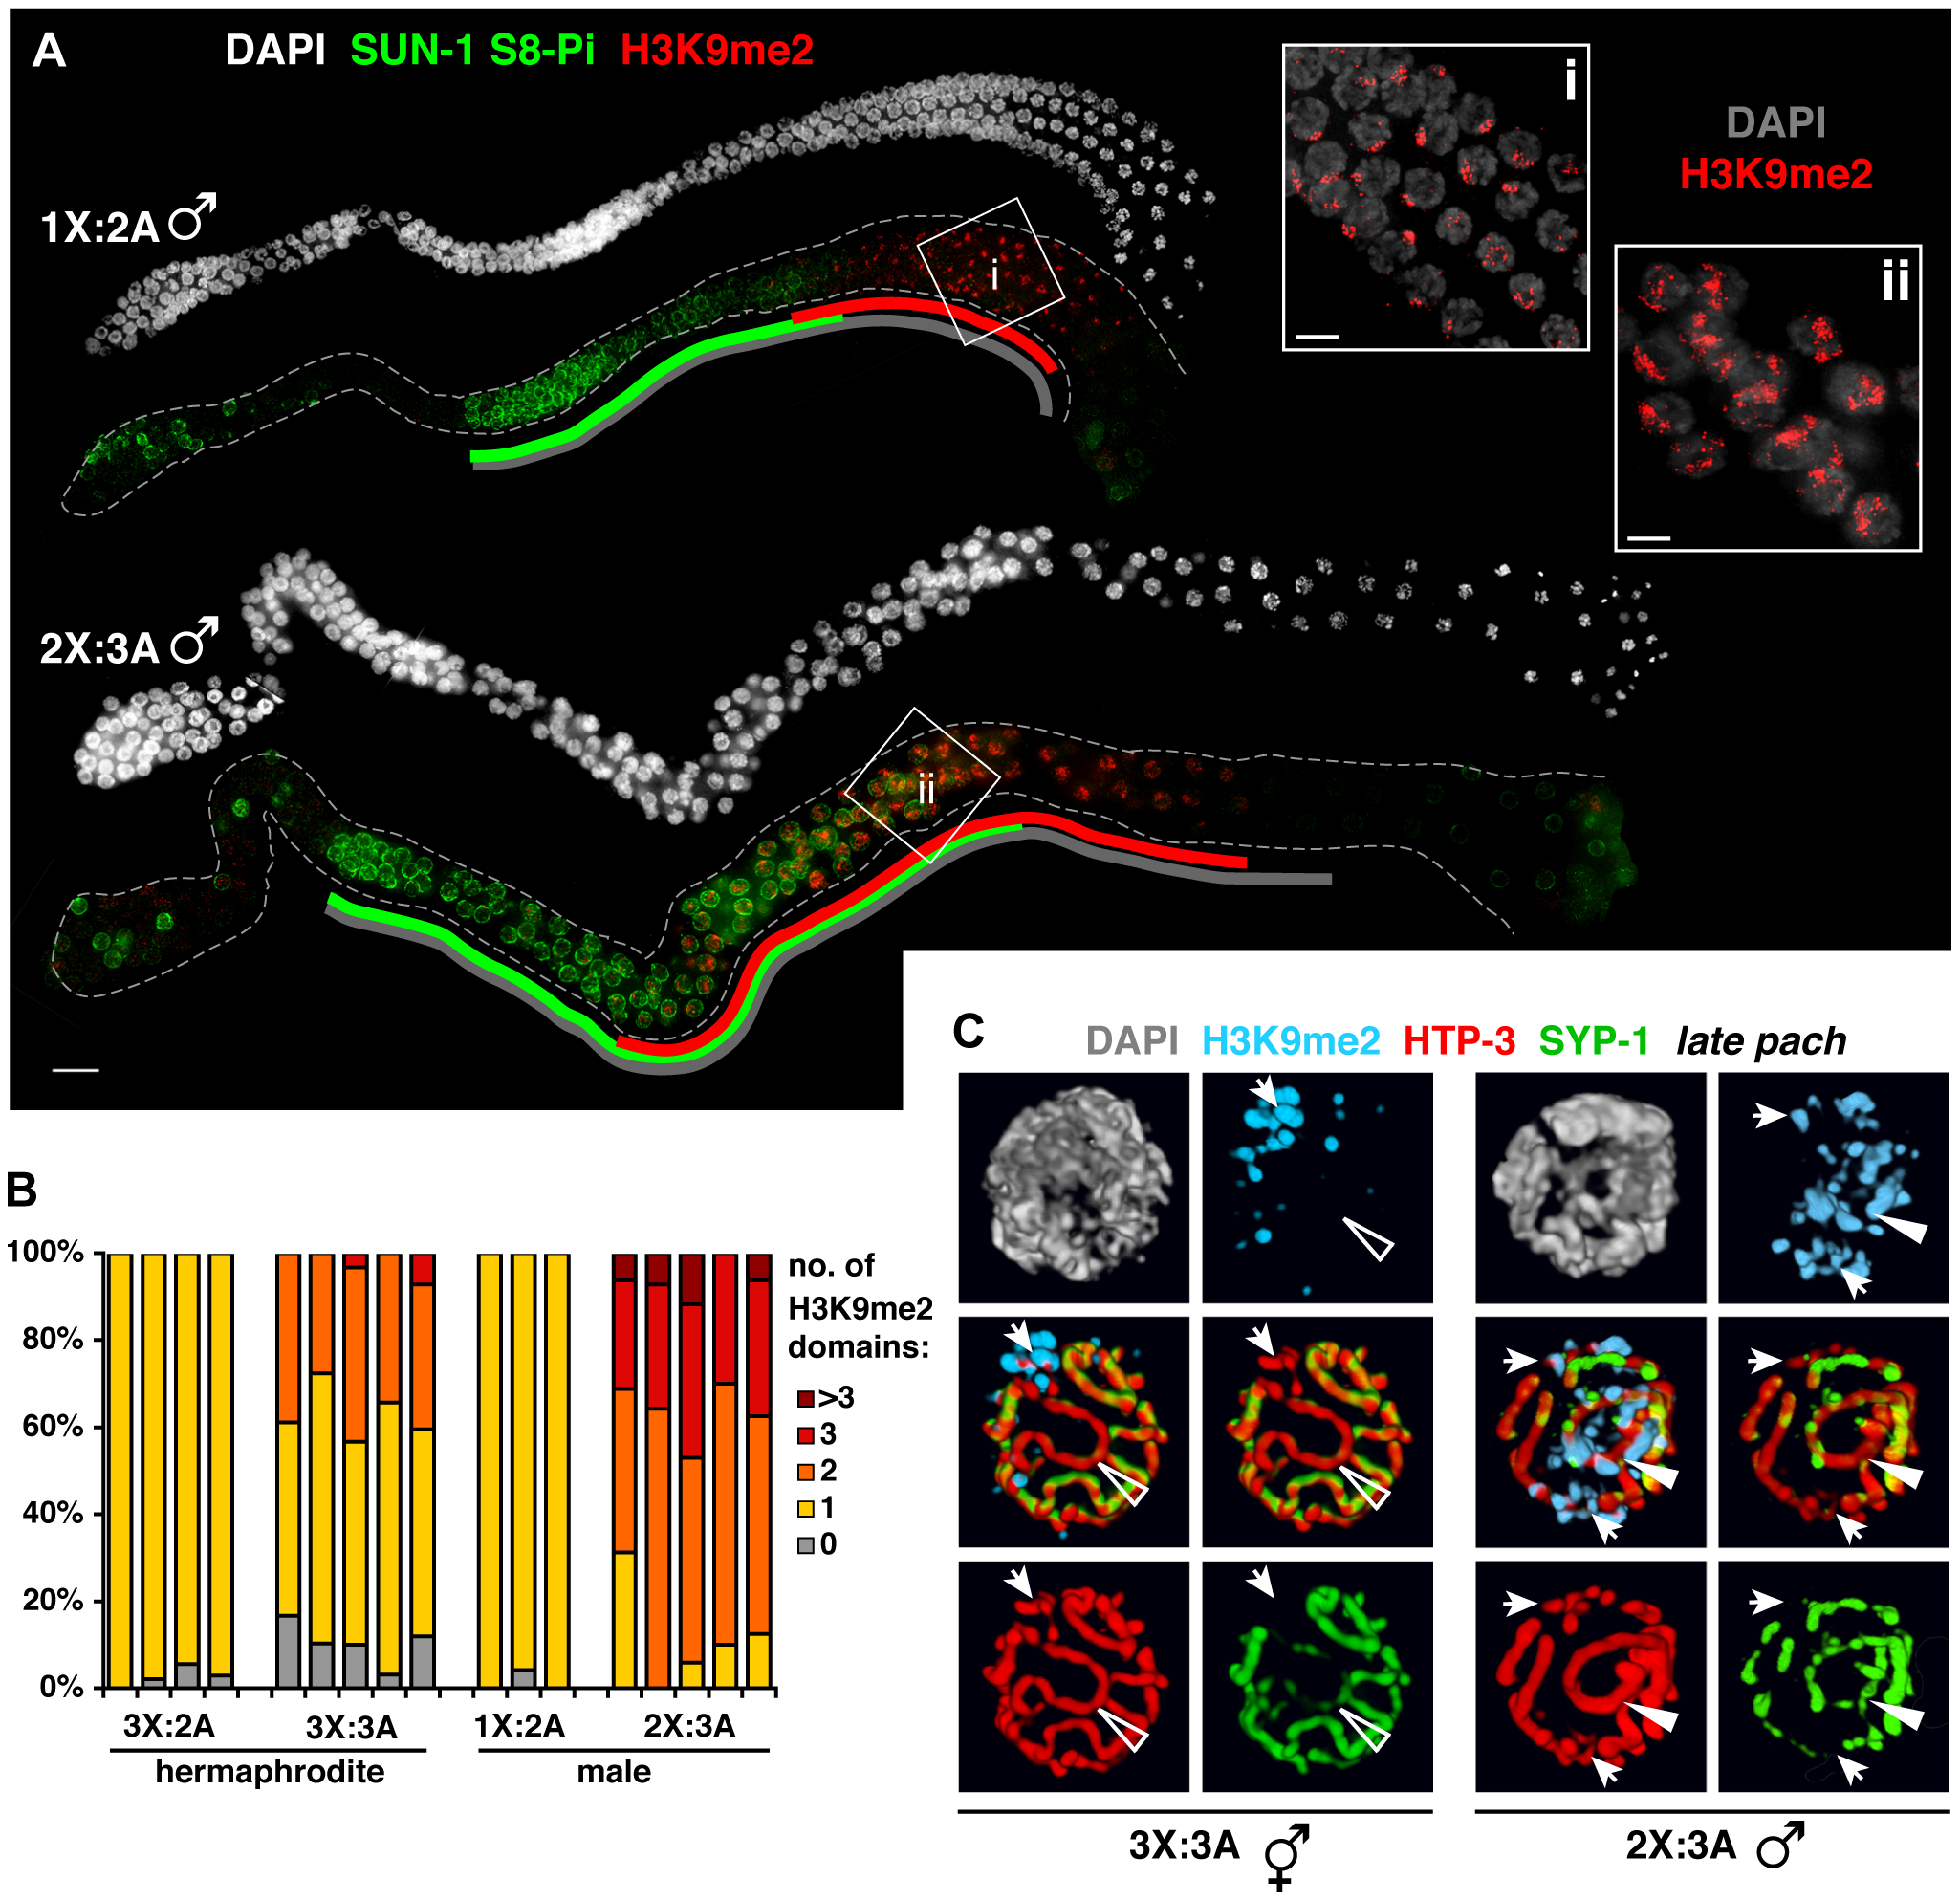 Male germ cells containing supernumerary chromosomes show a greater capacity to apply H3K9me2.